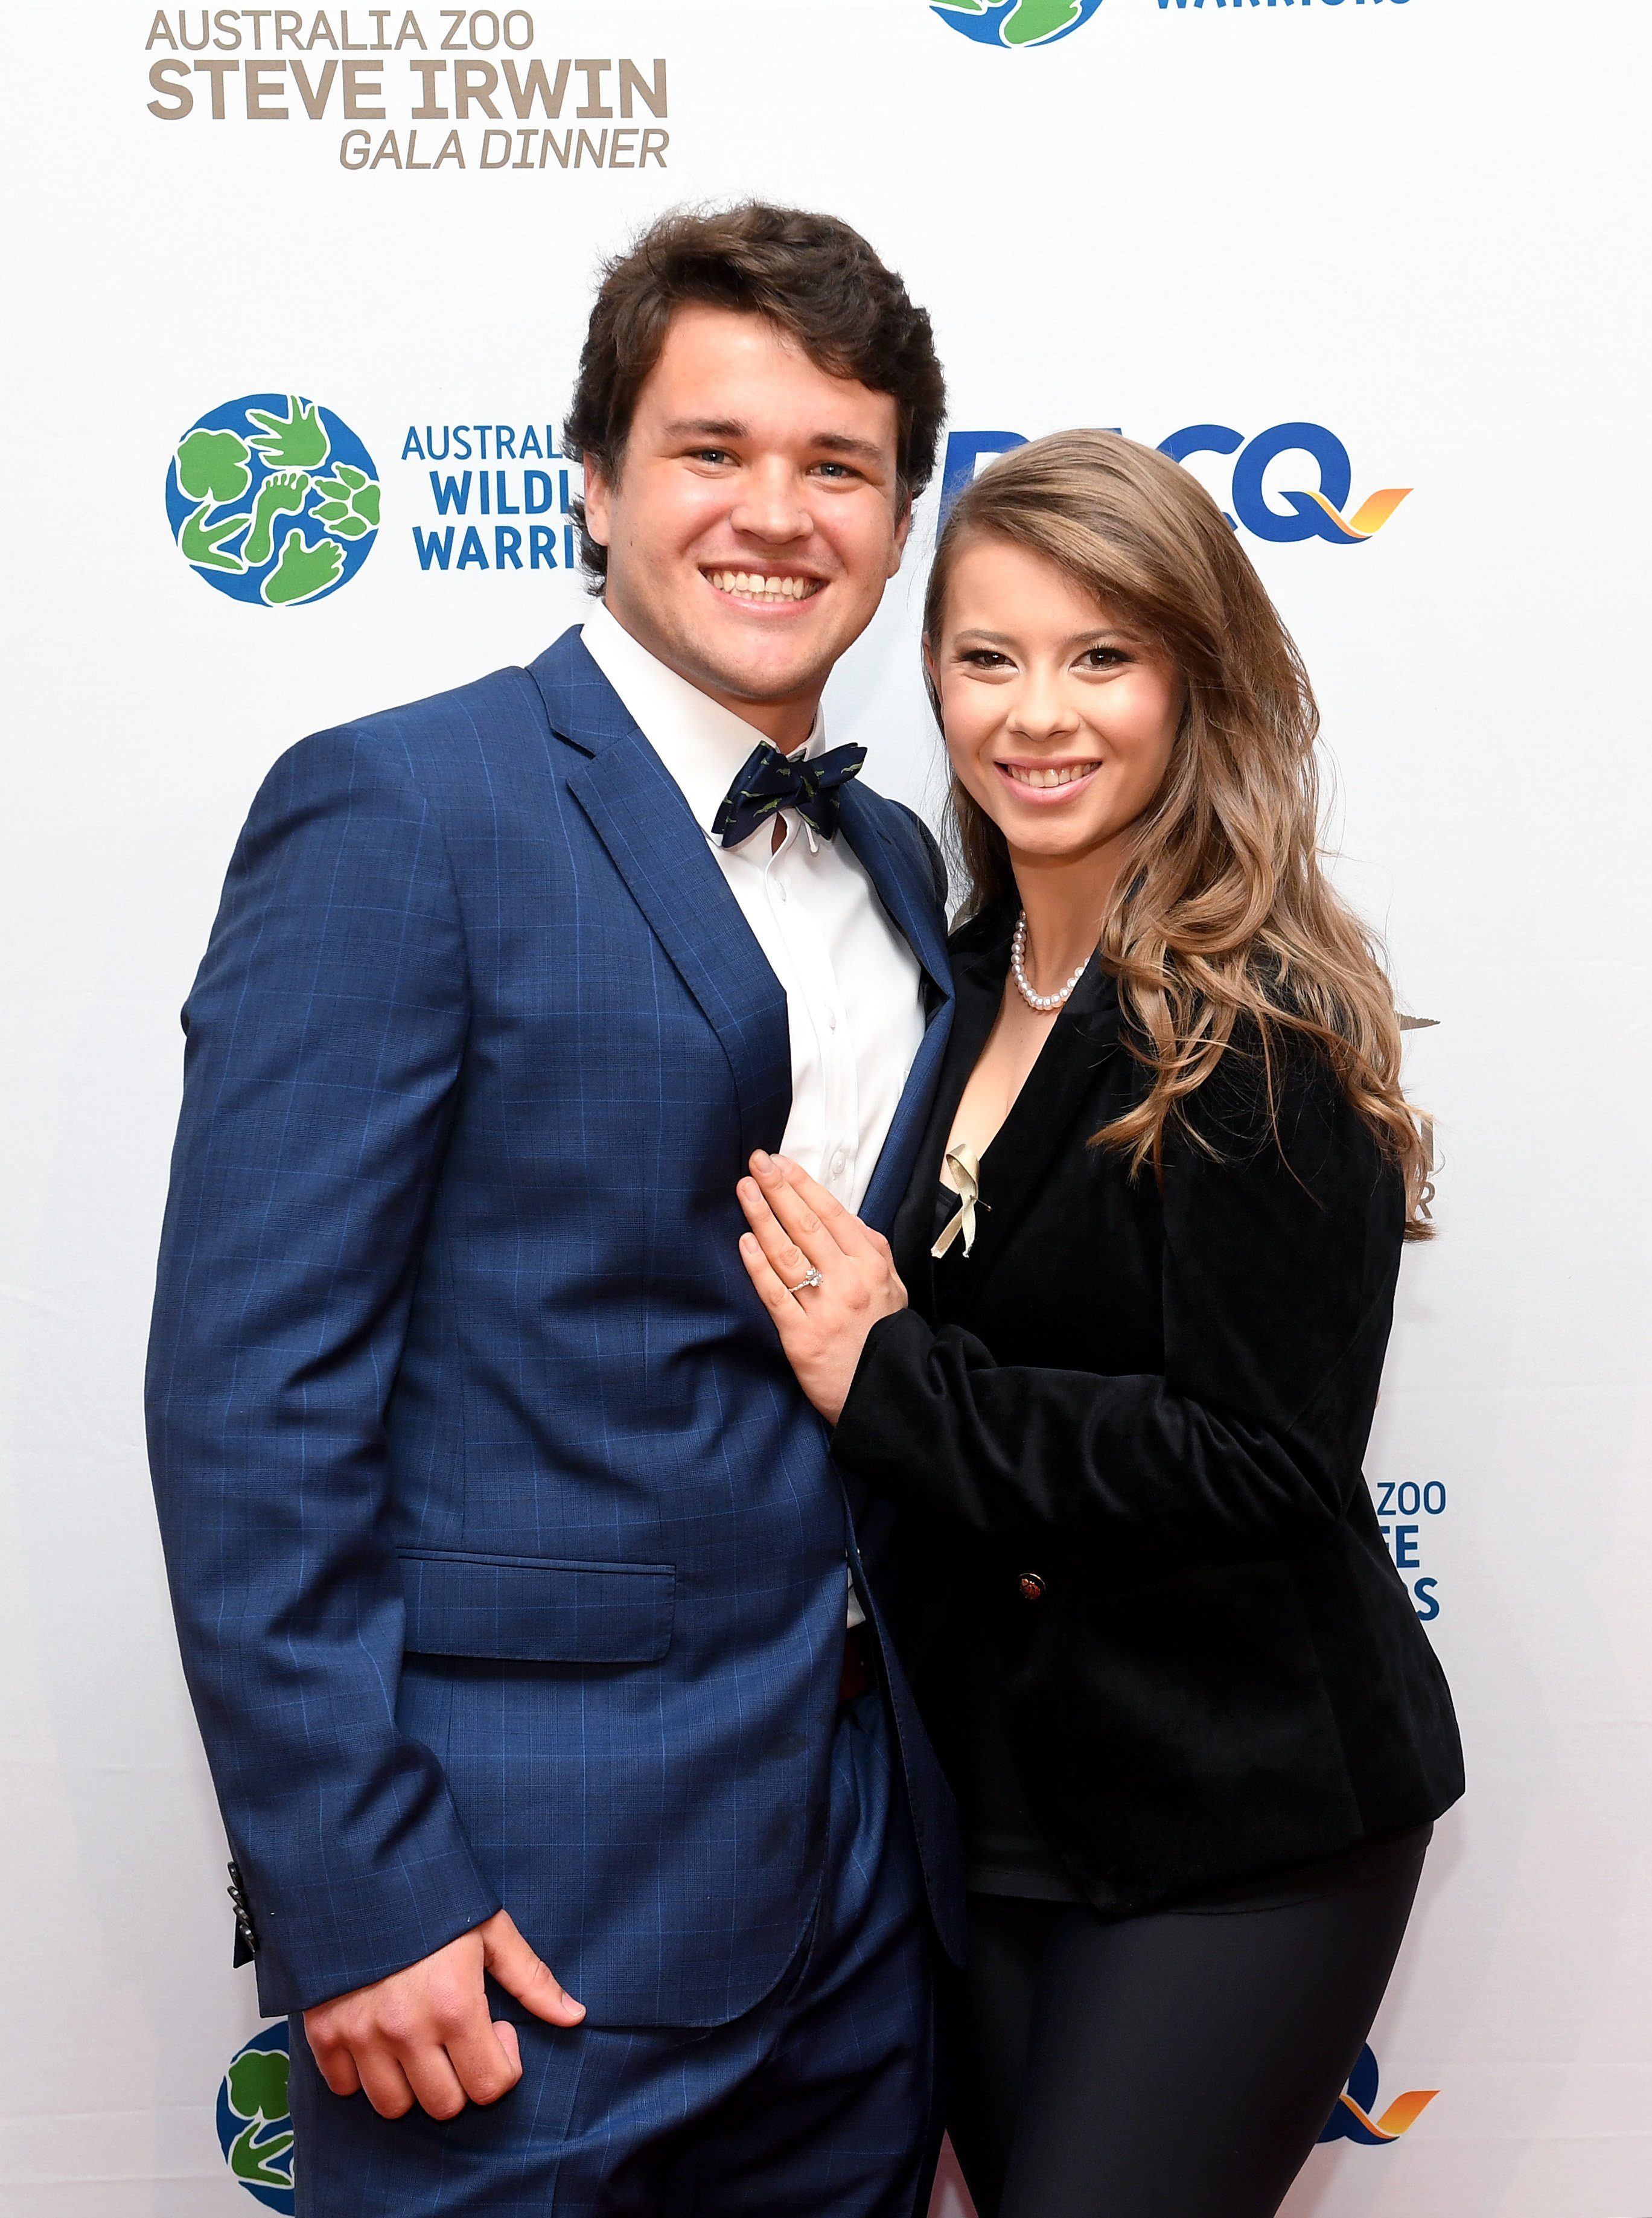 Bindi Irwin poses for a photo with fiance Chandler Powell at the annual Steve Irwin Gala Dinner at Brisbane Convention & Exhibition Centre on November 09, 2019 in Brisbane, Australia   Photo: Getty Images